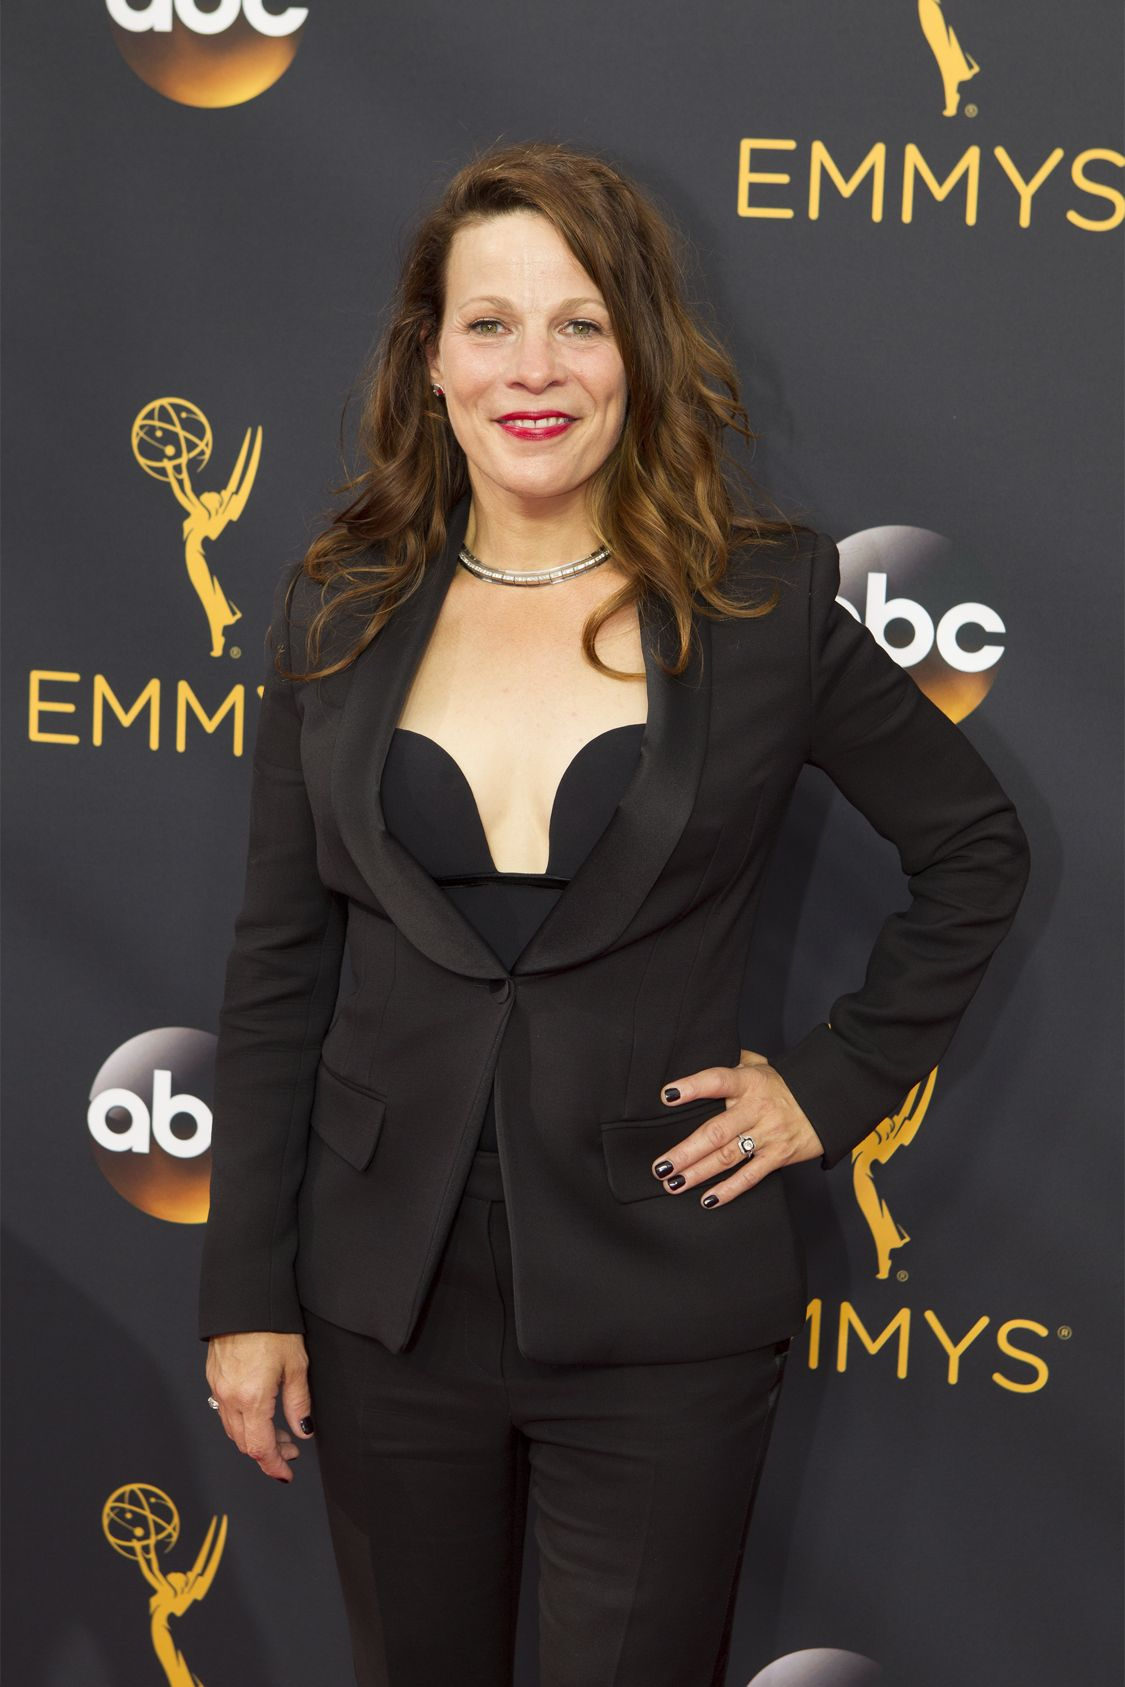 """THE 68TH EMMY(r) AWARDS - """"The 68th Emmy Awards"""" broadcasts live from The Microsoft Theater in Los Angeles, Sunday, September 18 (7:00-11:00 p.m. EDT/4:00-8:00 p.m. PDT), on ABC and is hosted by Jimmy Kimmel. (ABC/Rick Rowell) LILI TAYLOR"""